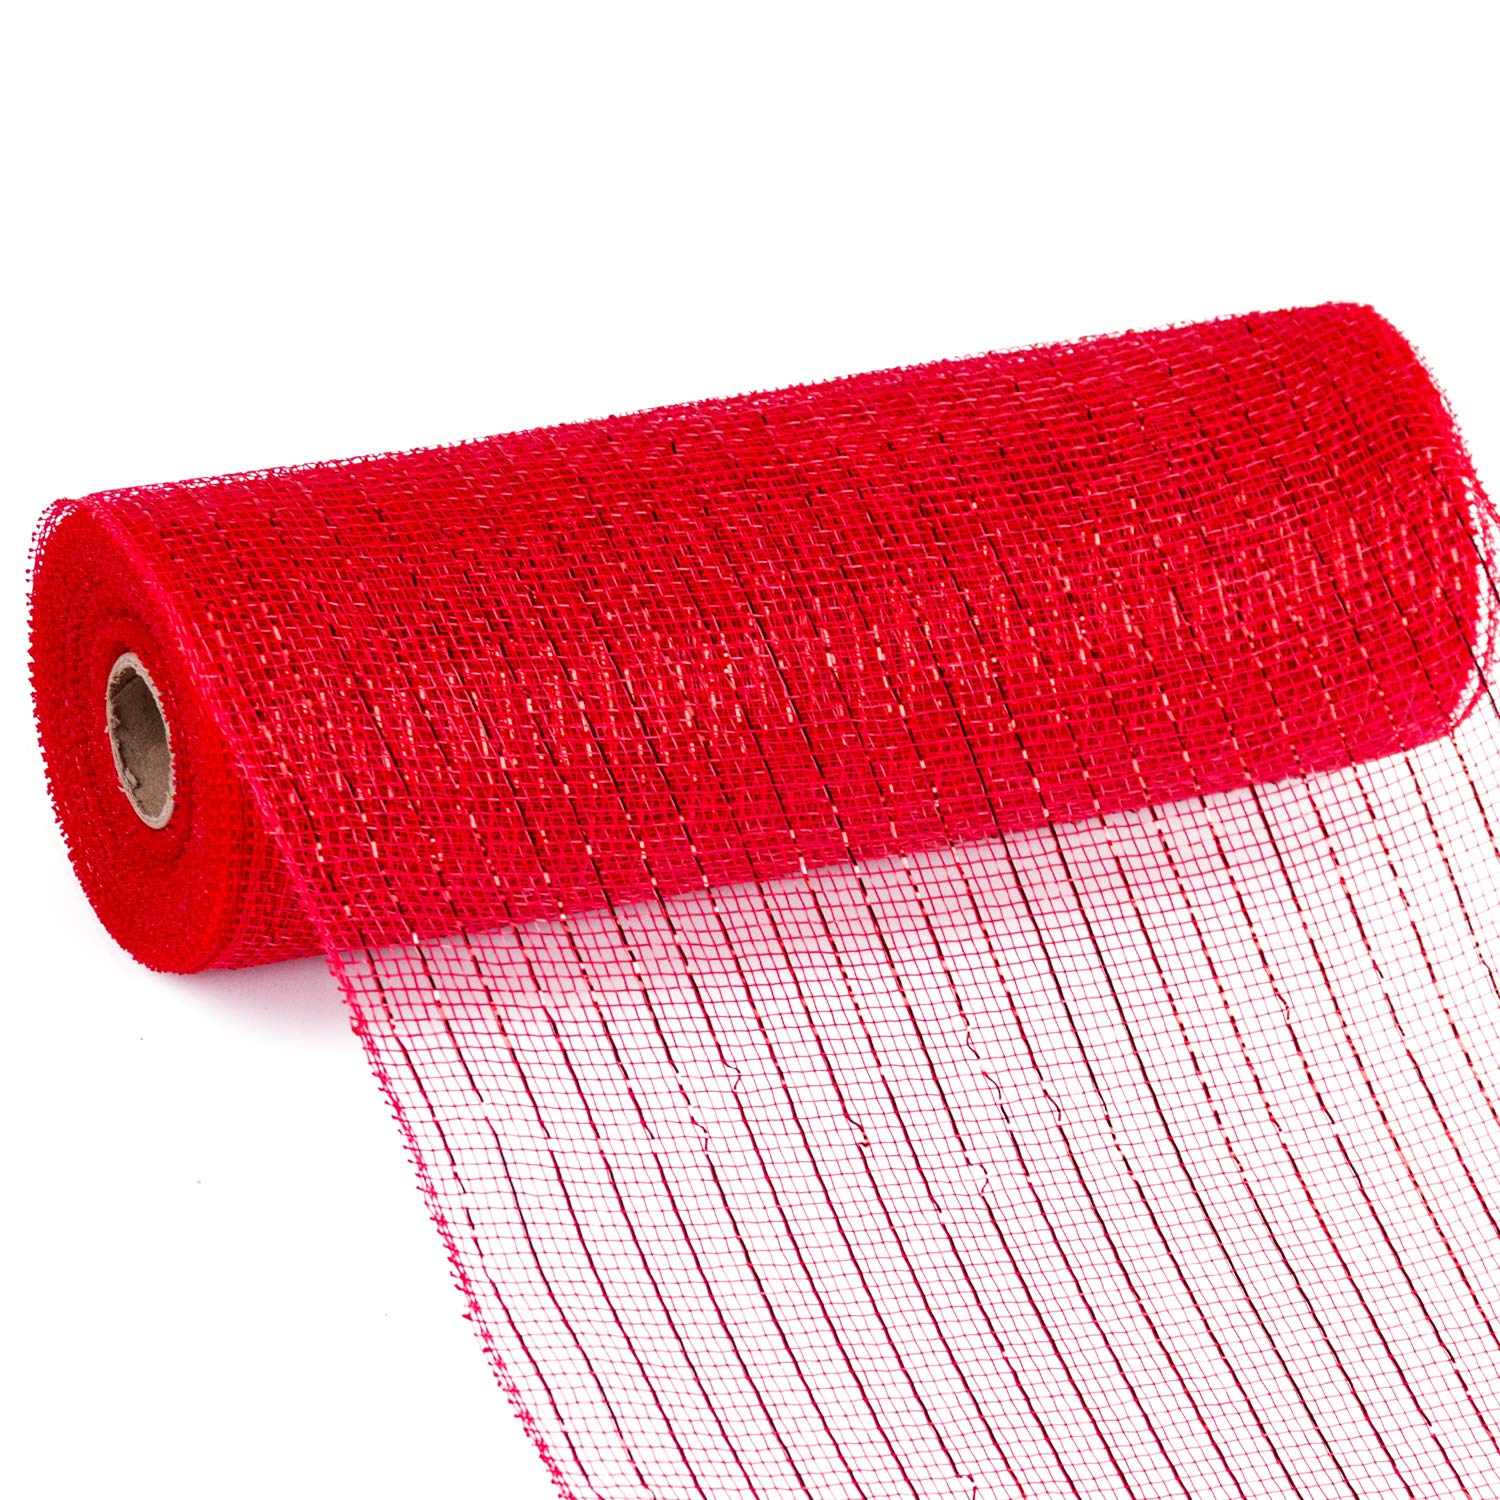 LaRibbons Deco Poly Mesh Ribbon - 10 inch x 30 feet Each Roll - Metallic Foil Red/Royal/White/Navy Set for Wreaths, Swags and Decorating - 4 Pack by LaRibbons (Image #5)